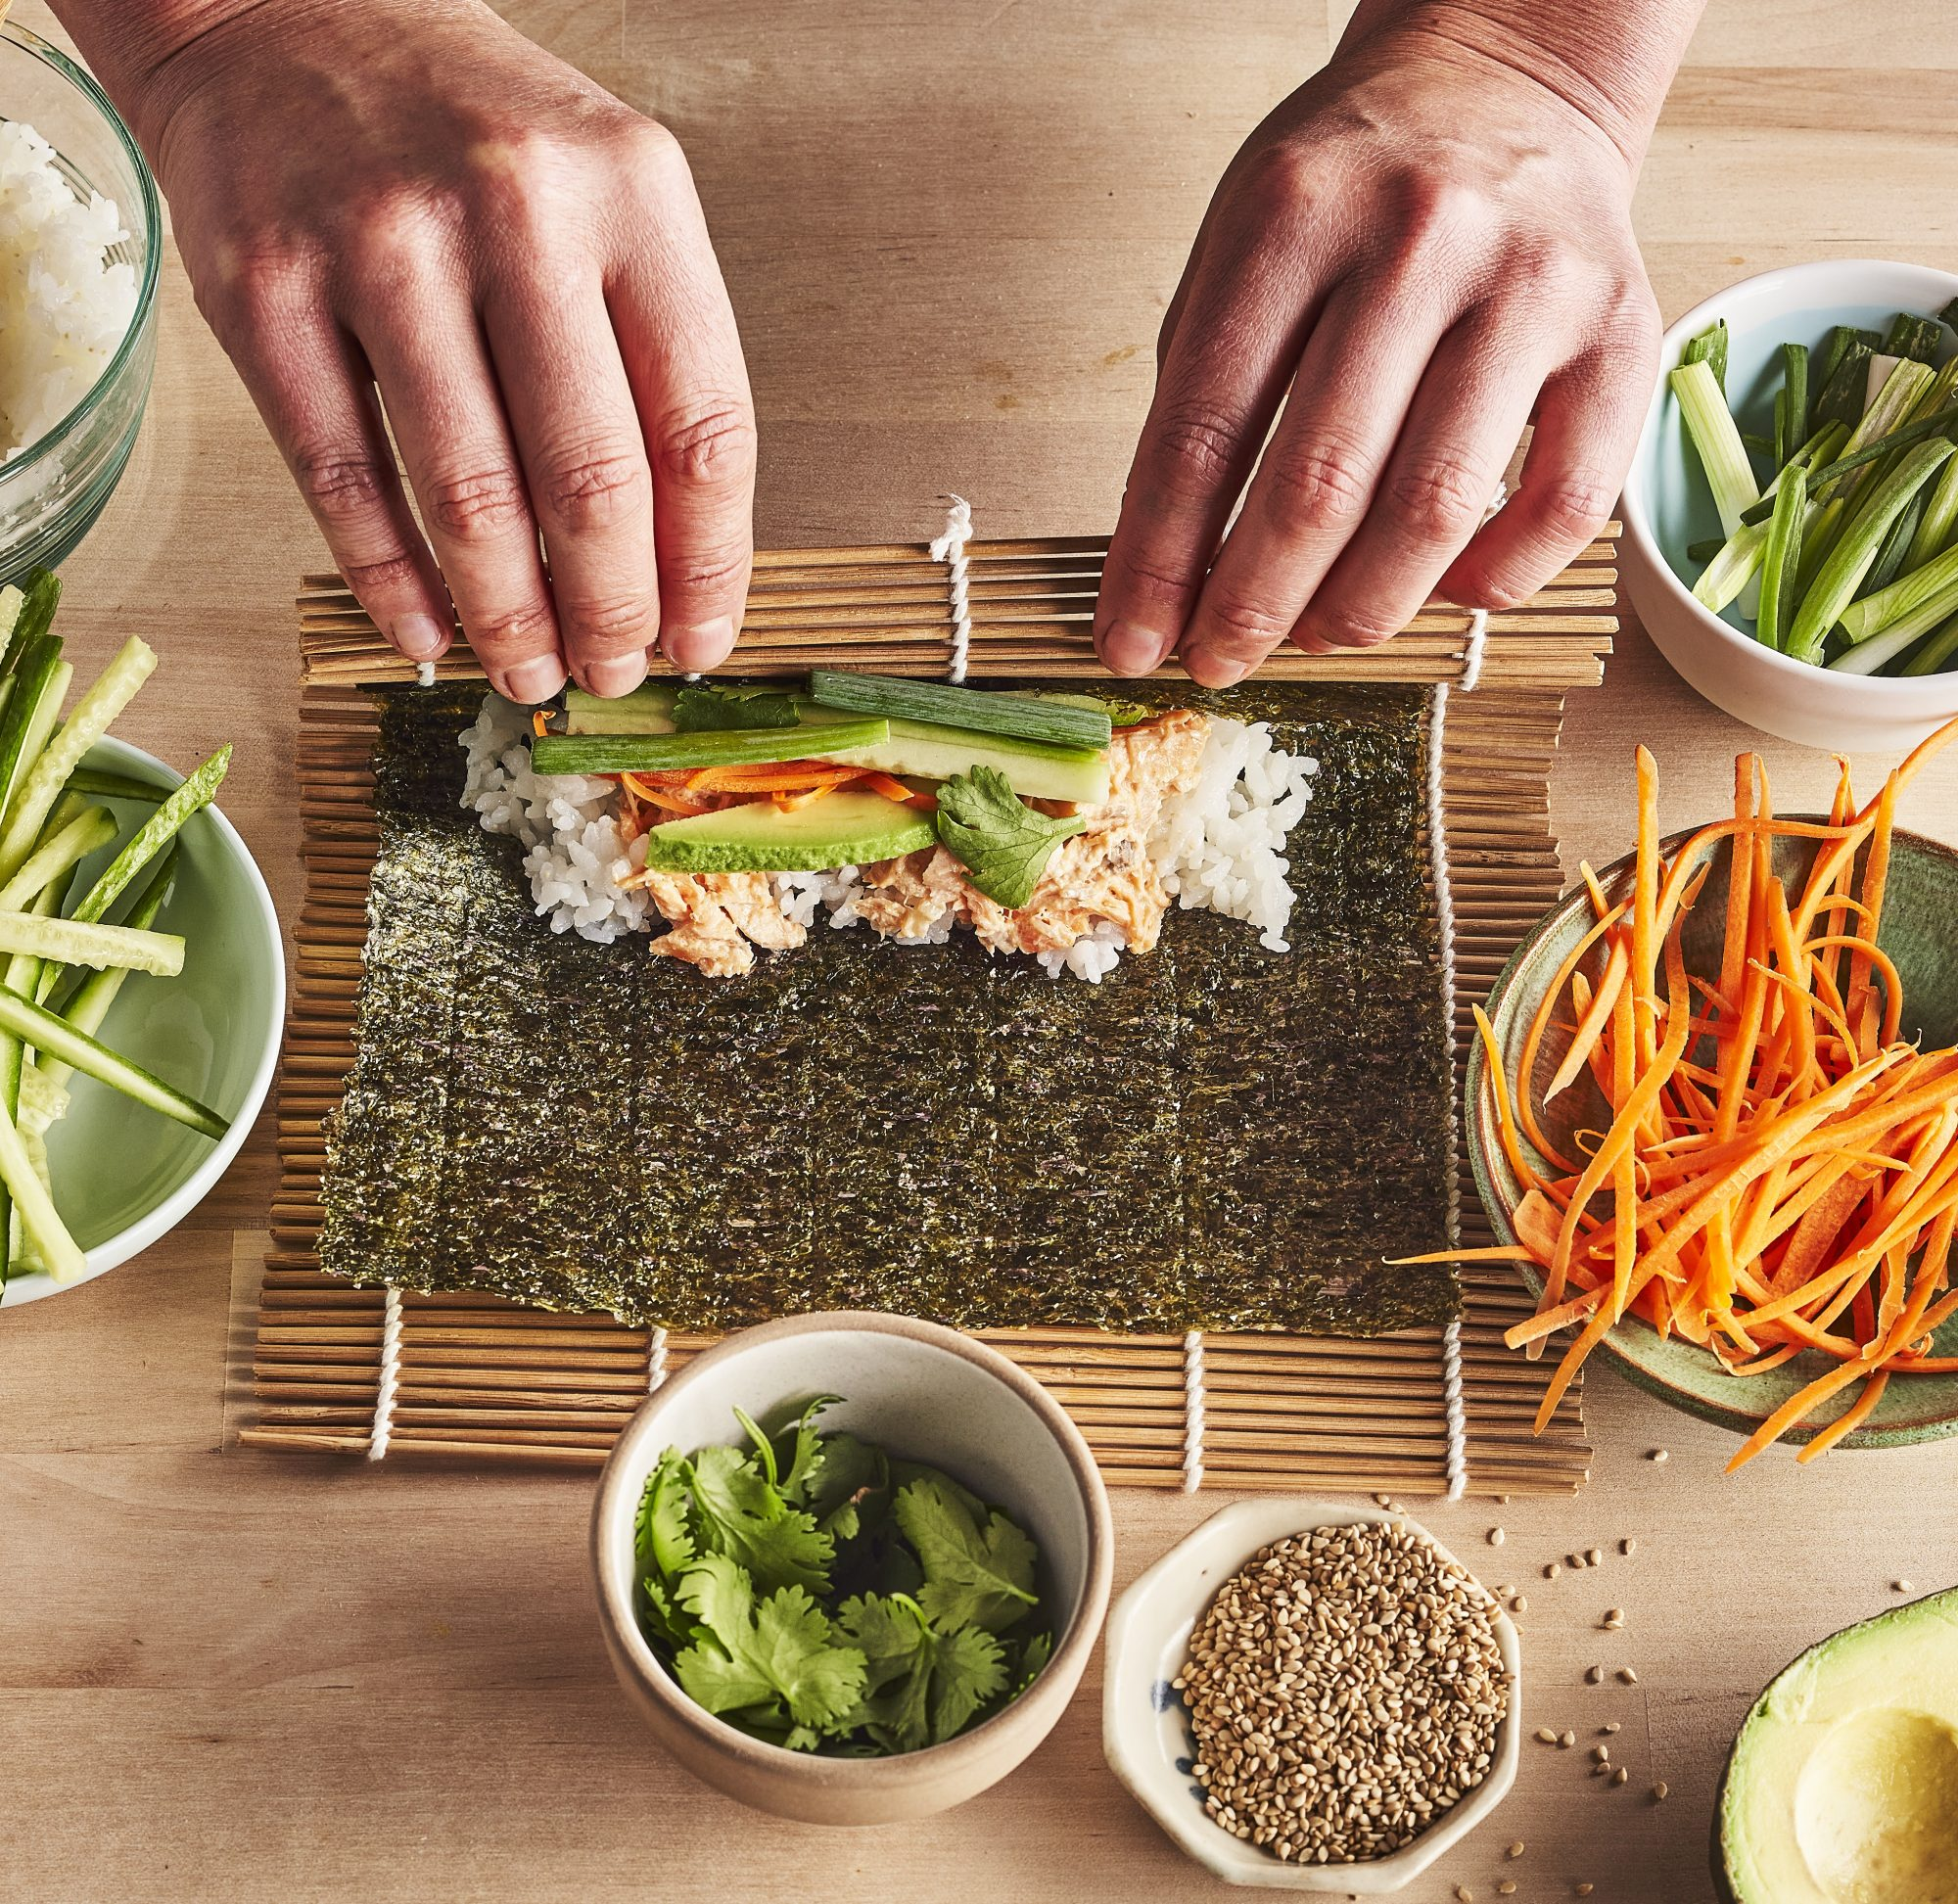 Sushing rolling mat with ingredients for sush